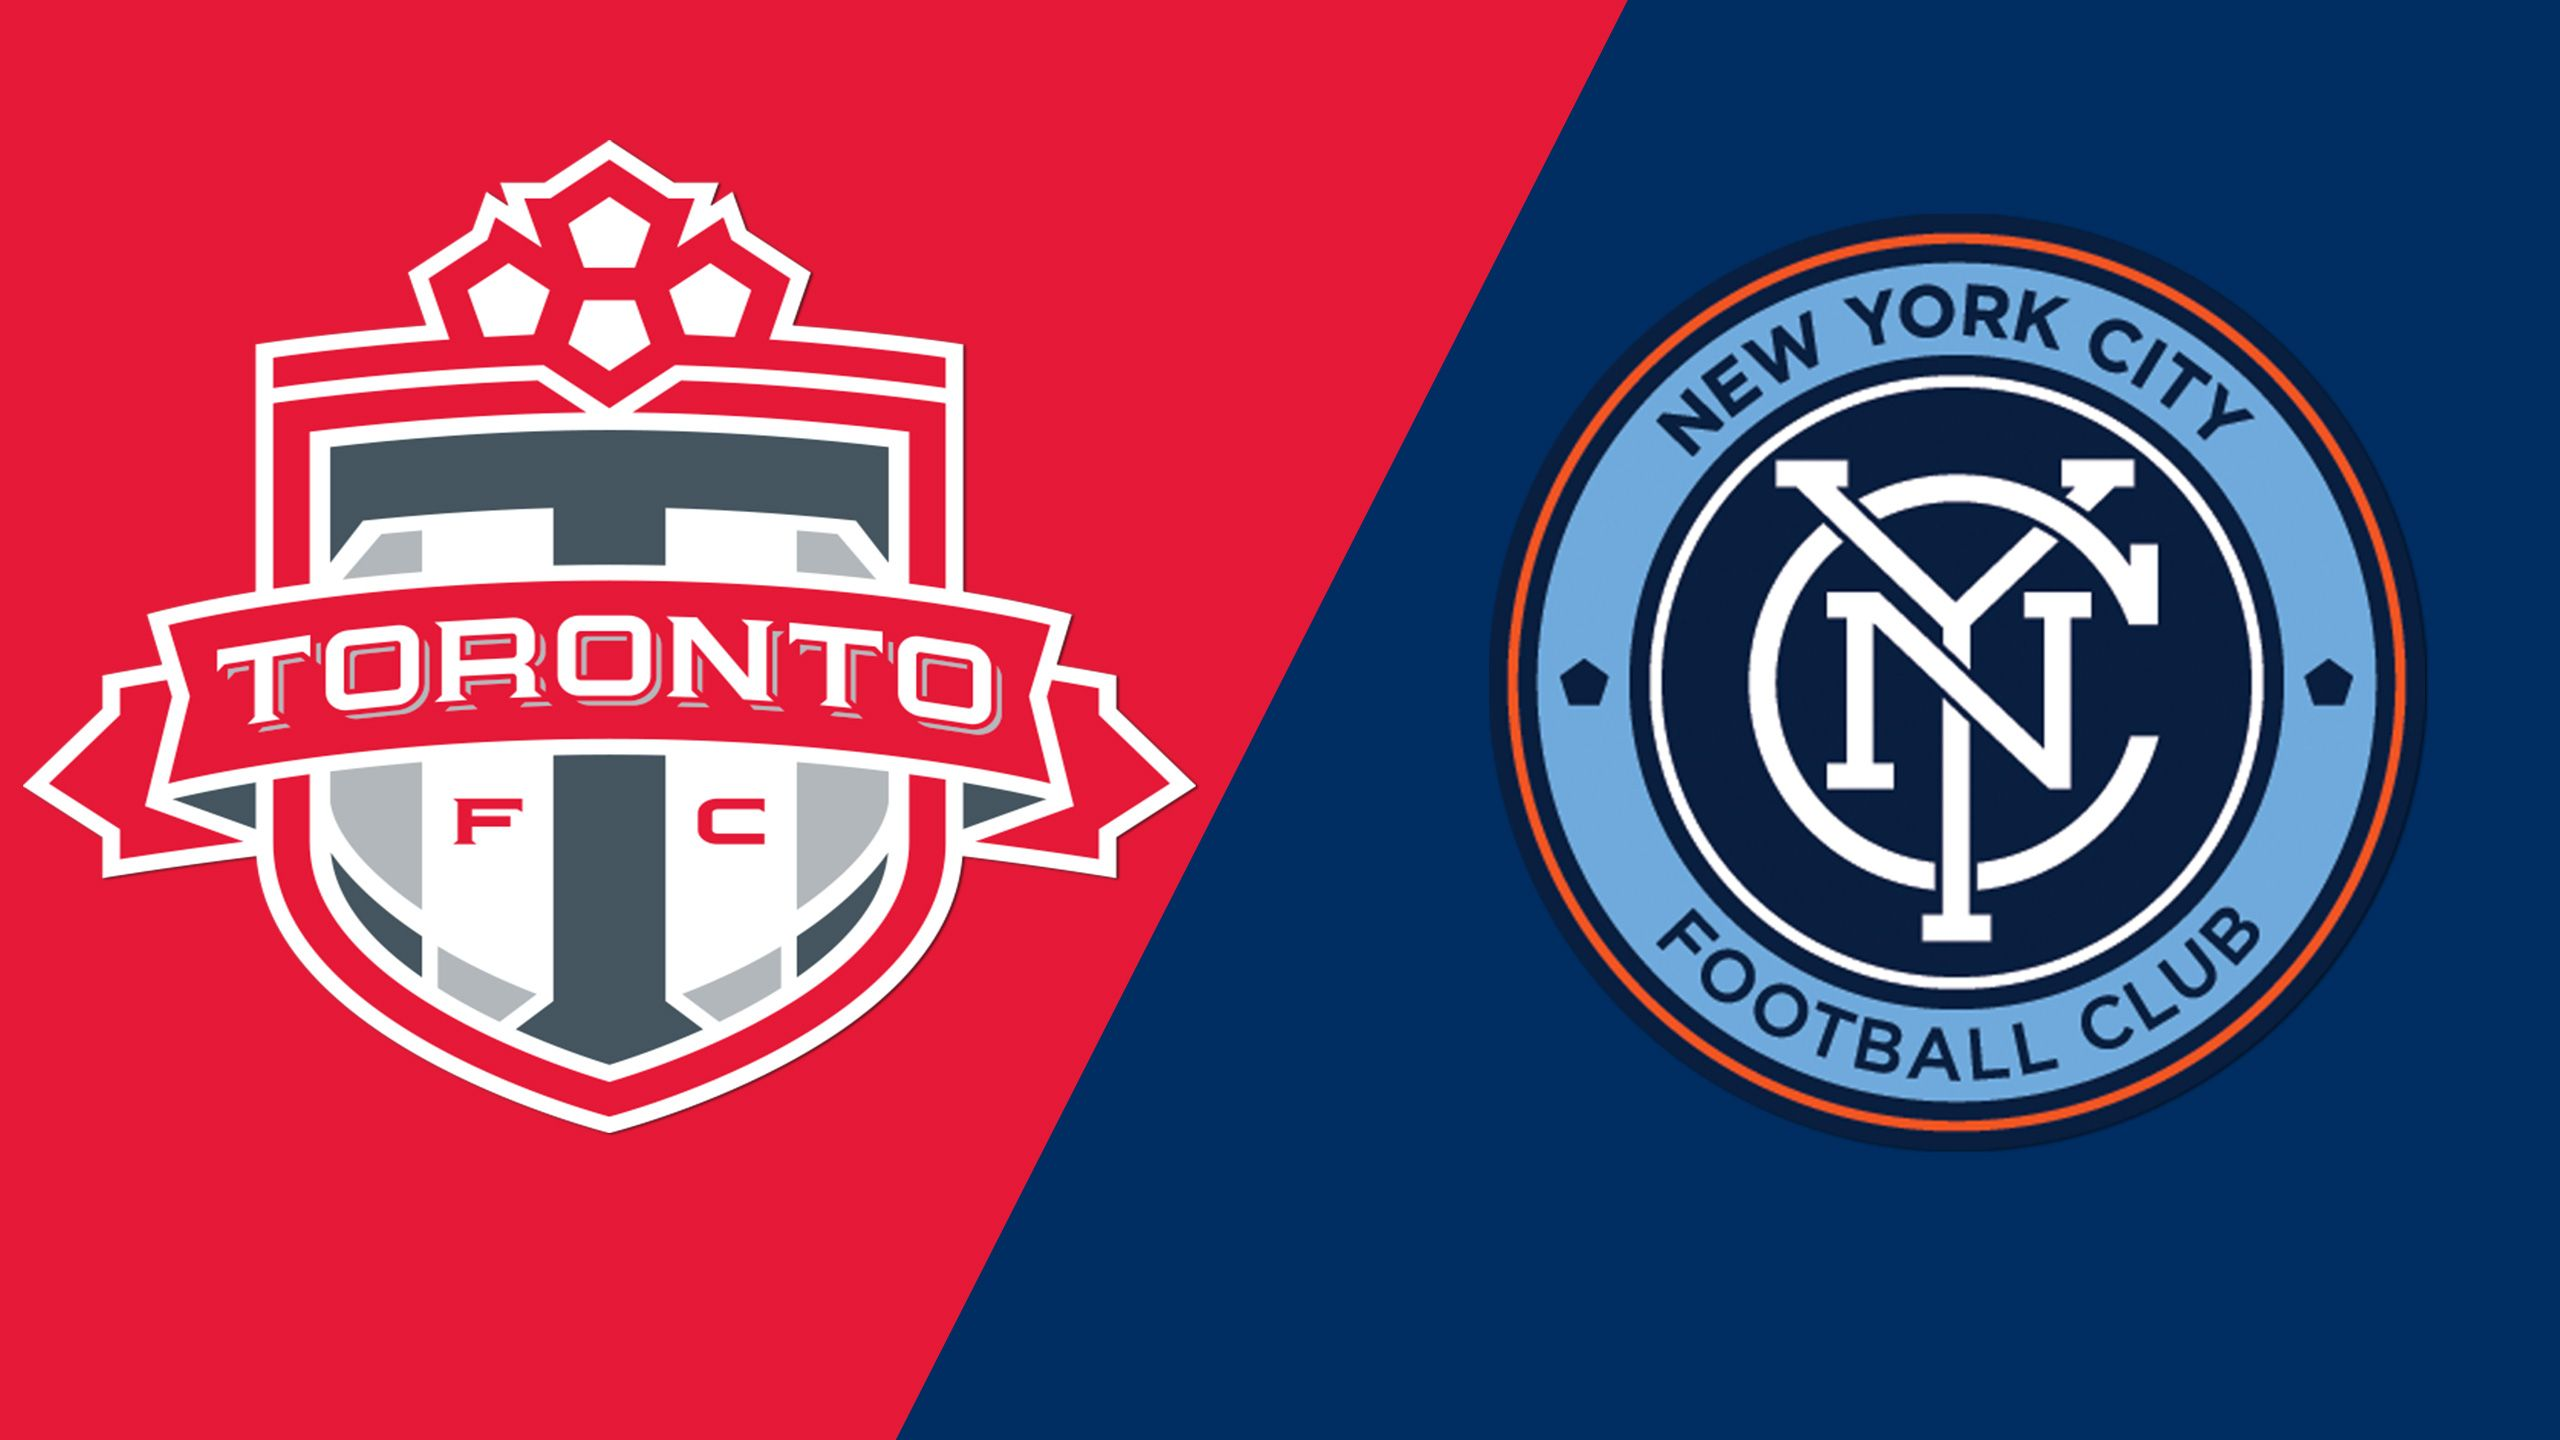 In Spanish - Toronto FC vs. New York City FC